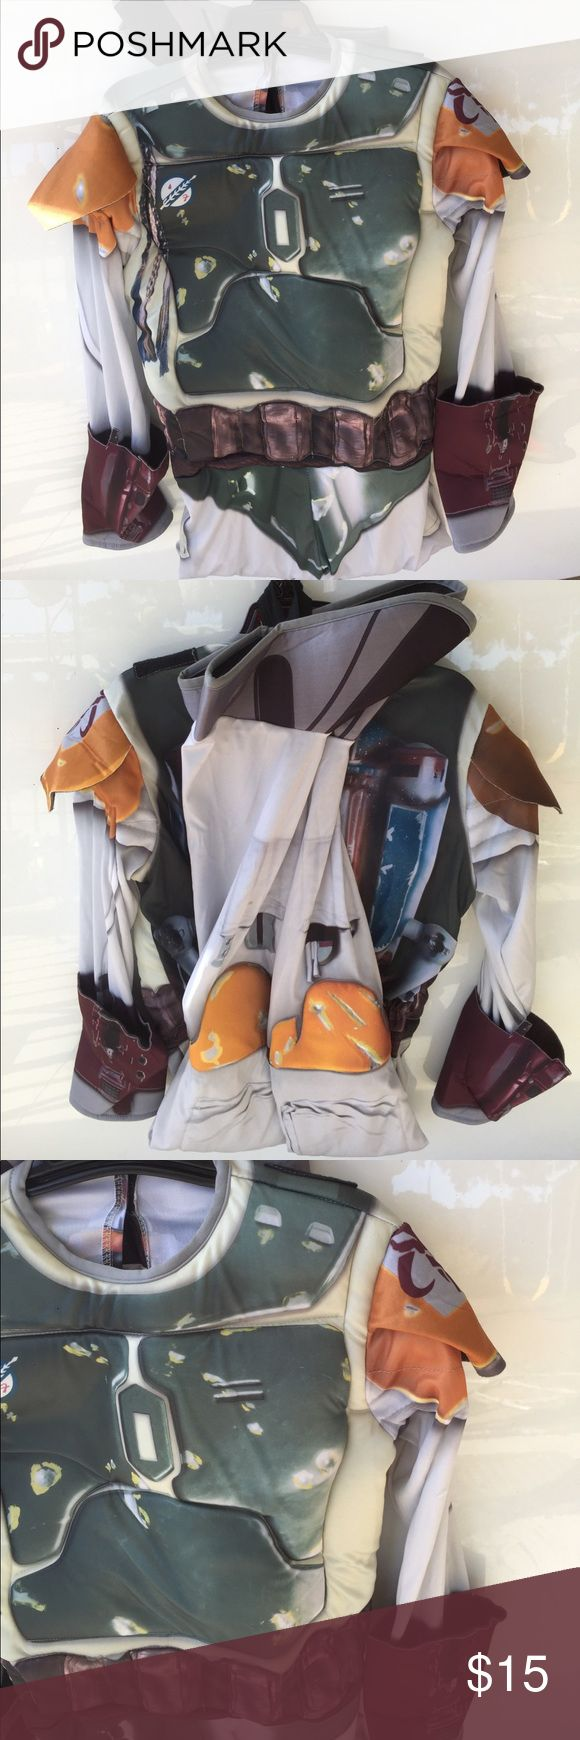 Boba Fett Star Wars Boys Halloween Costume Large Includes: 1x Muscle Jumpsuit (Missing Cape and Mask) Costume is new, never worn! Costumes Halloween